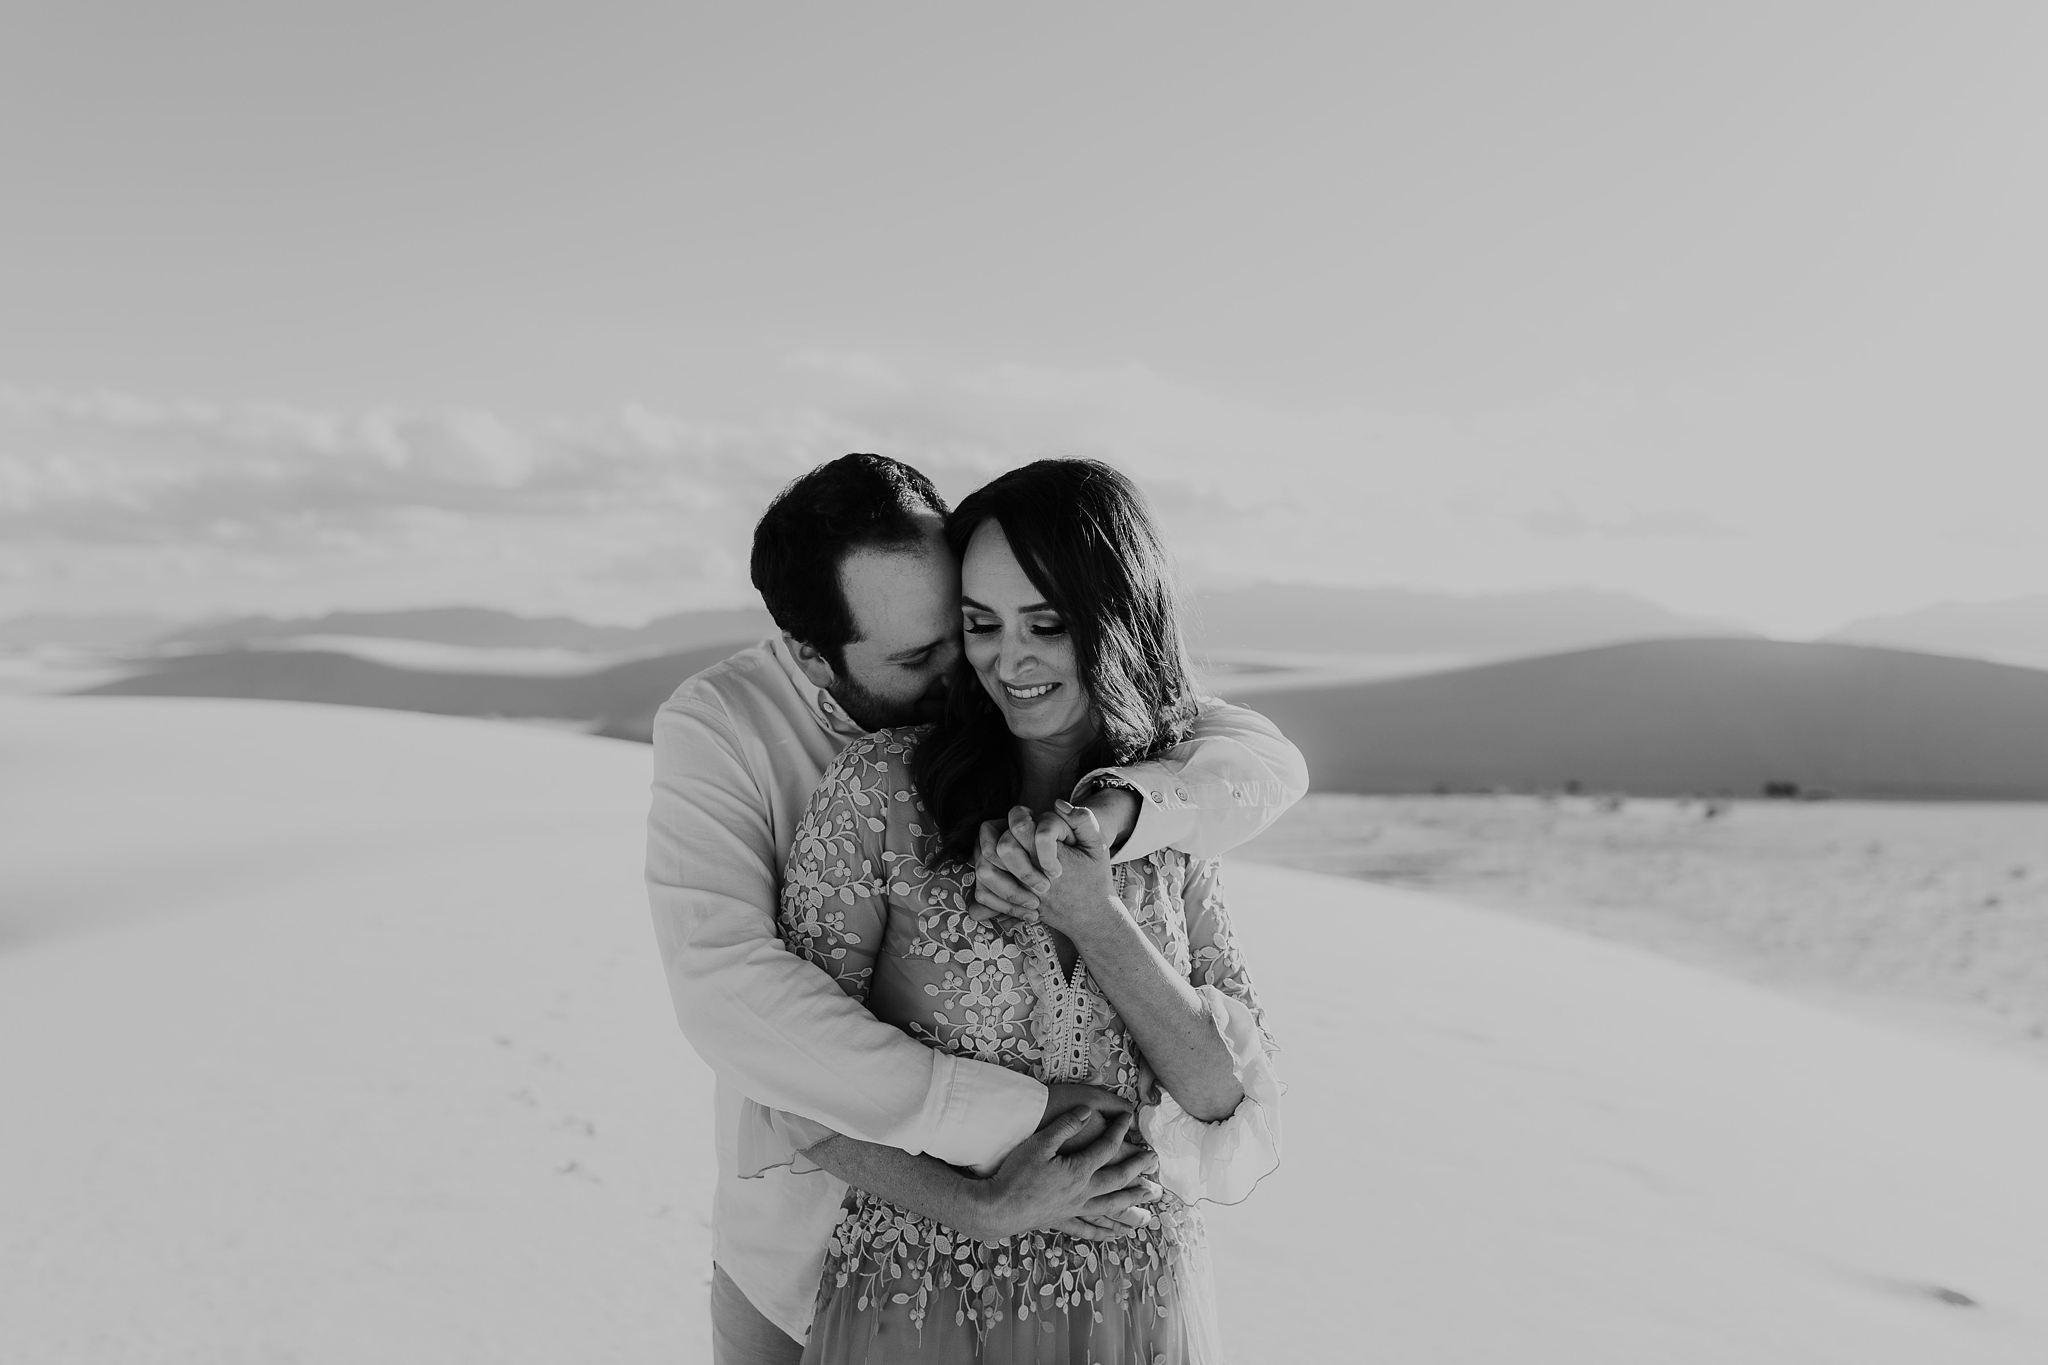 Alicia+lucia+photography+-+albuquerque+wedding+photographer+-+santa+fe+wedding+photography+-+new+mexico+wedding+photographer+-+new+mexico+wedding+-+new+mexico+engagement+-+white+sands+engagement+-+white+sands+national+monument_0009.jpg